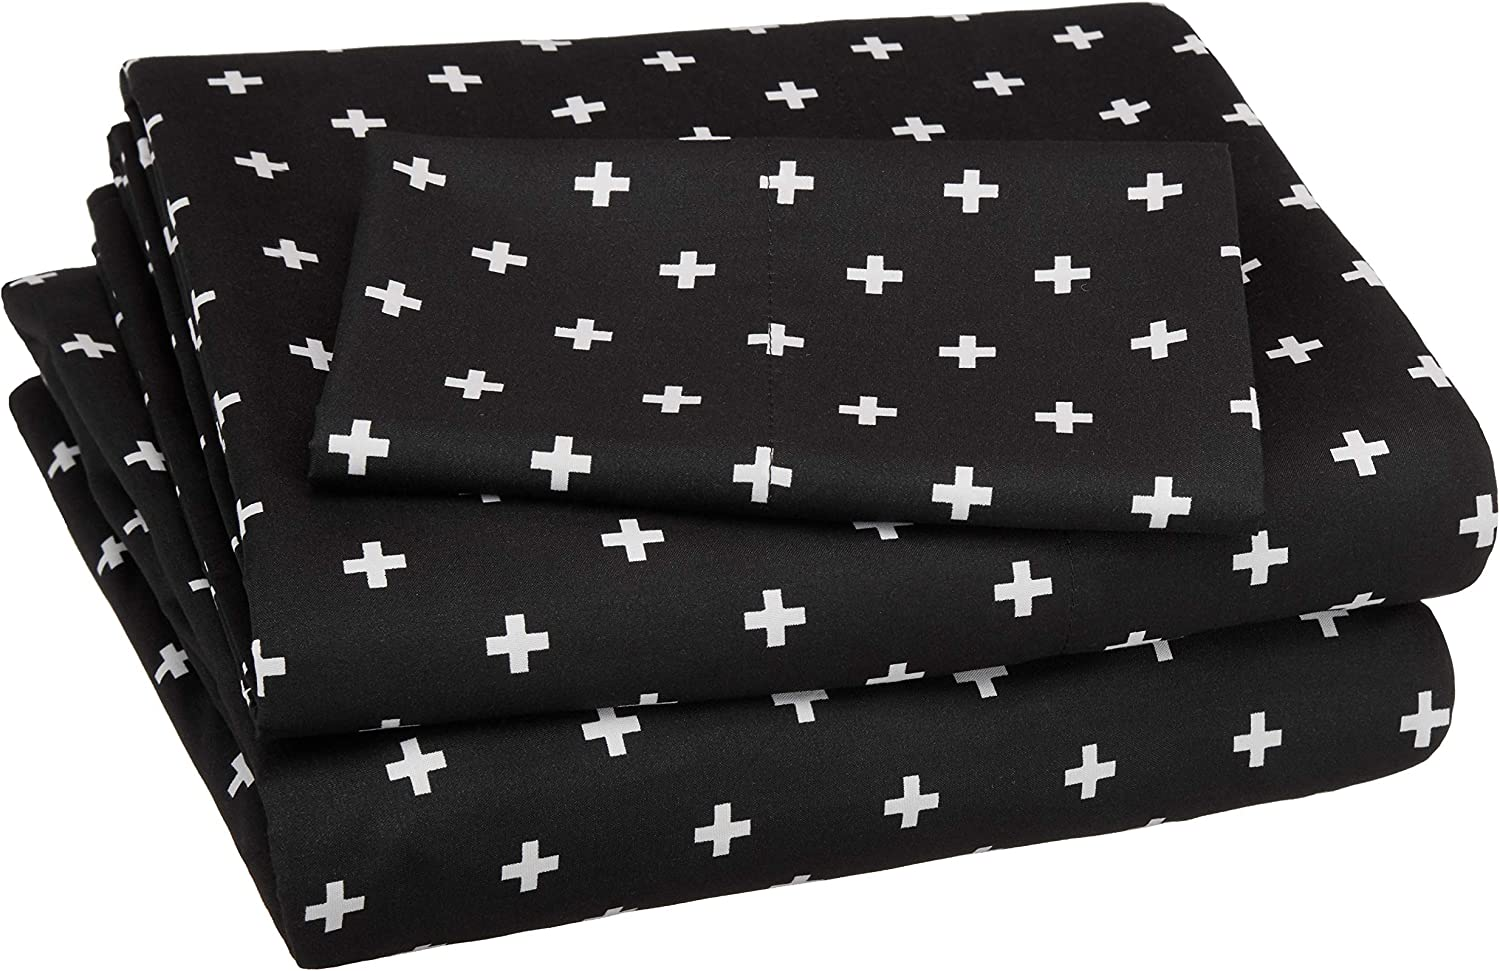 AmazonBasics Soft Microfiber Sheet Set with Elastic Pockets - Twin, Black Plus's